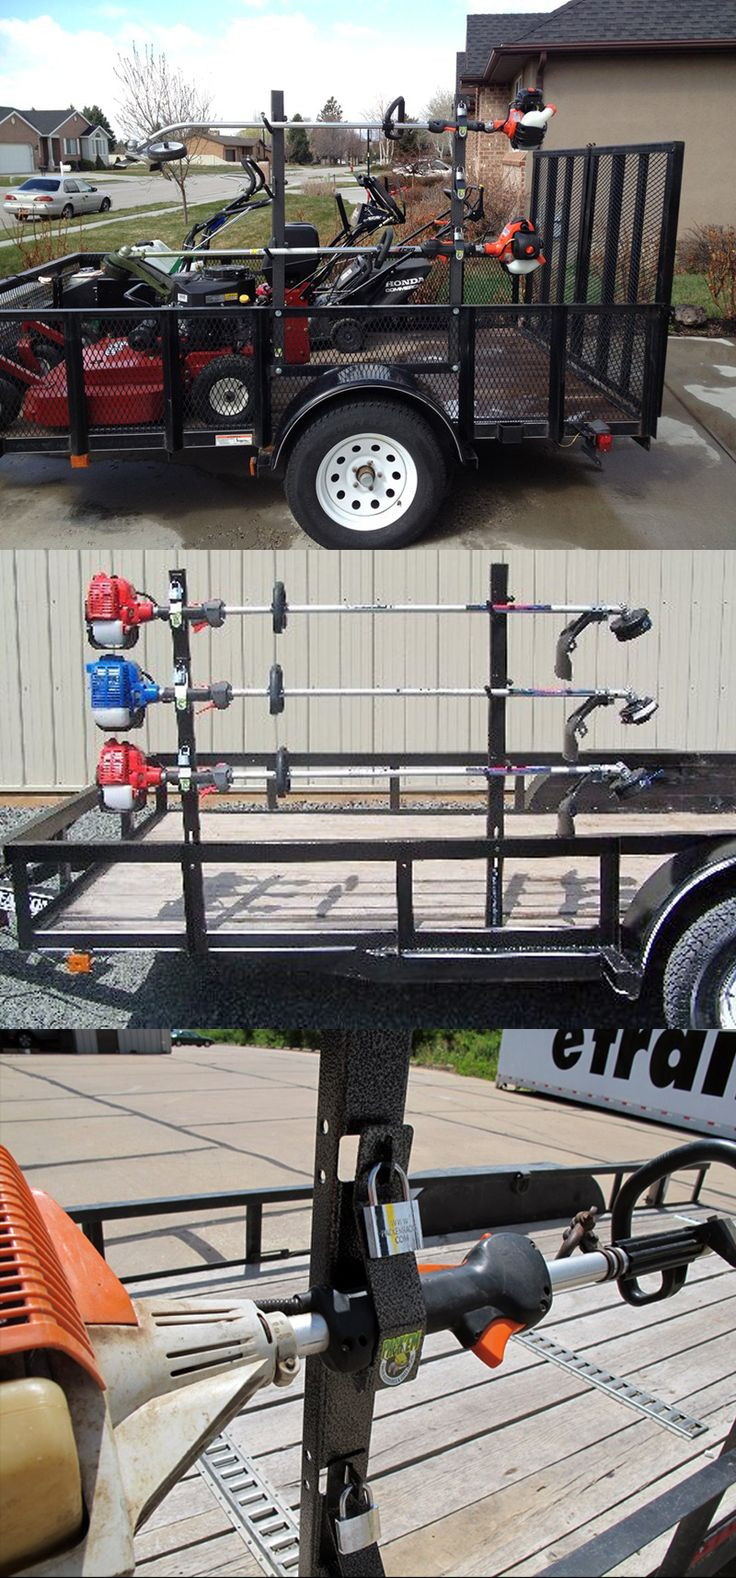 Grass Trimmer Rack for Open Utility Trailers - the perfect storage unit/accessory while on the road. Holds up to 3 string trimmers or weed whackers.